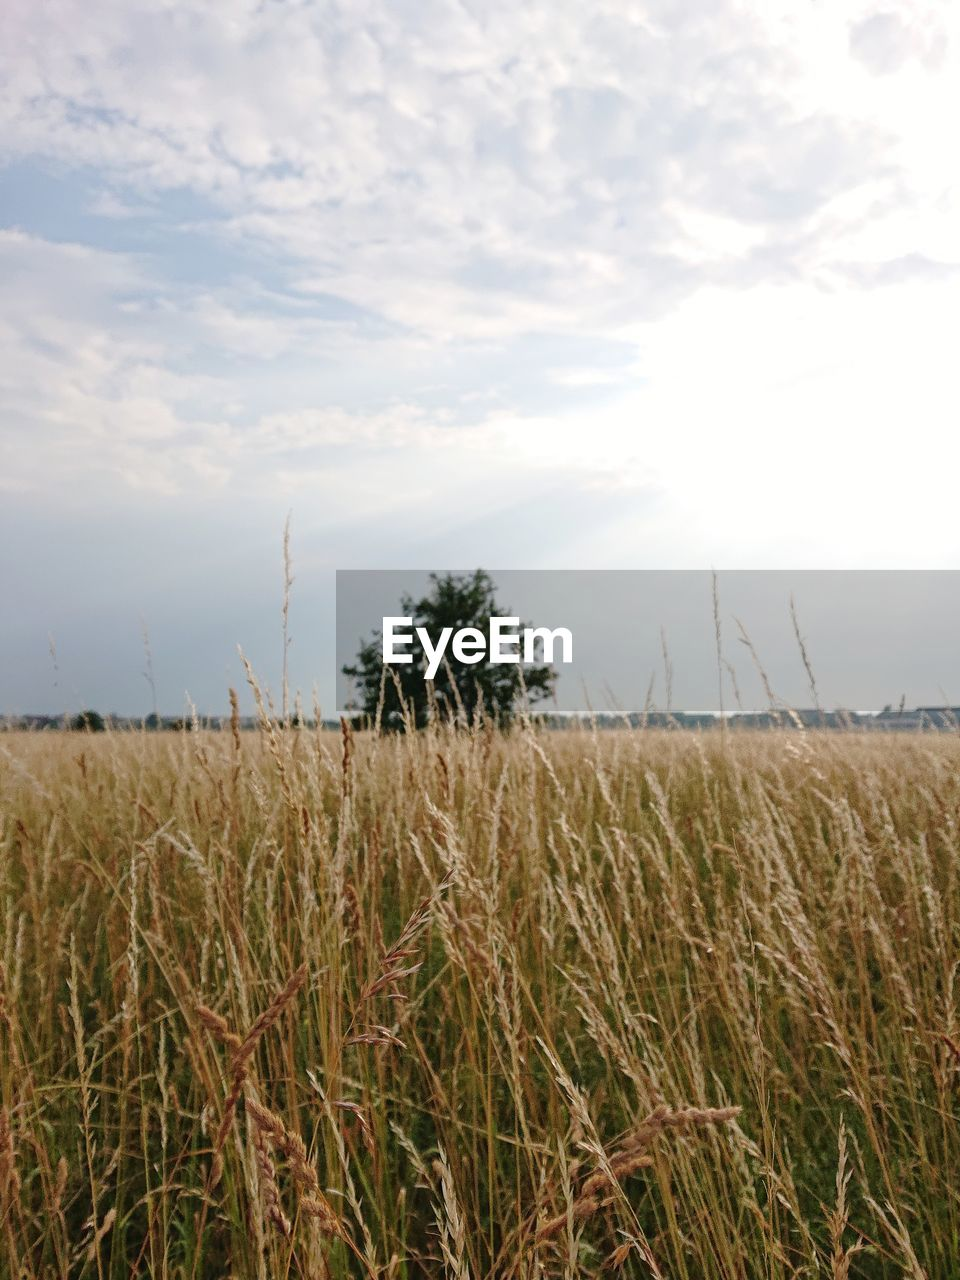 sky, plant, field, land, cloud - sky, growth, environment, landscape, tranquility, tranquil scene, beauty in nature, agriculture, scenics - nature, nature, rural scene, crop, farm, cereal plant, day, grass, no people, outdoors, plantation